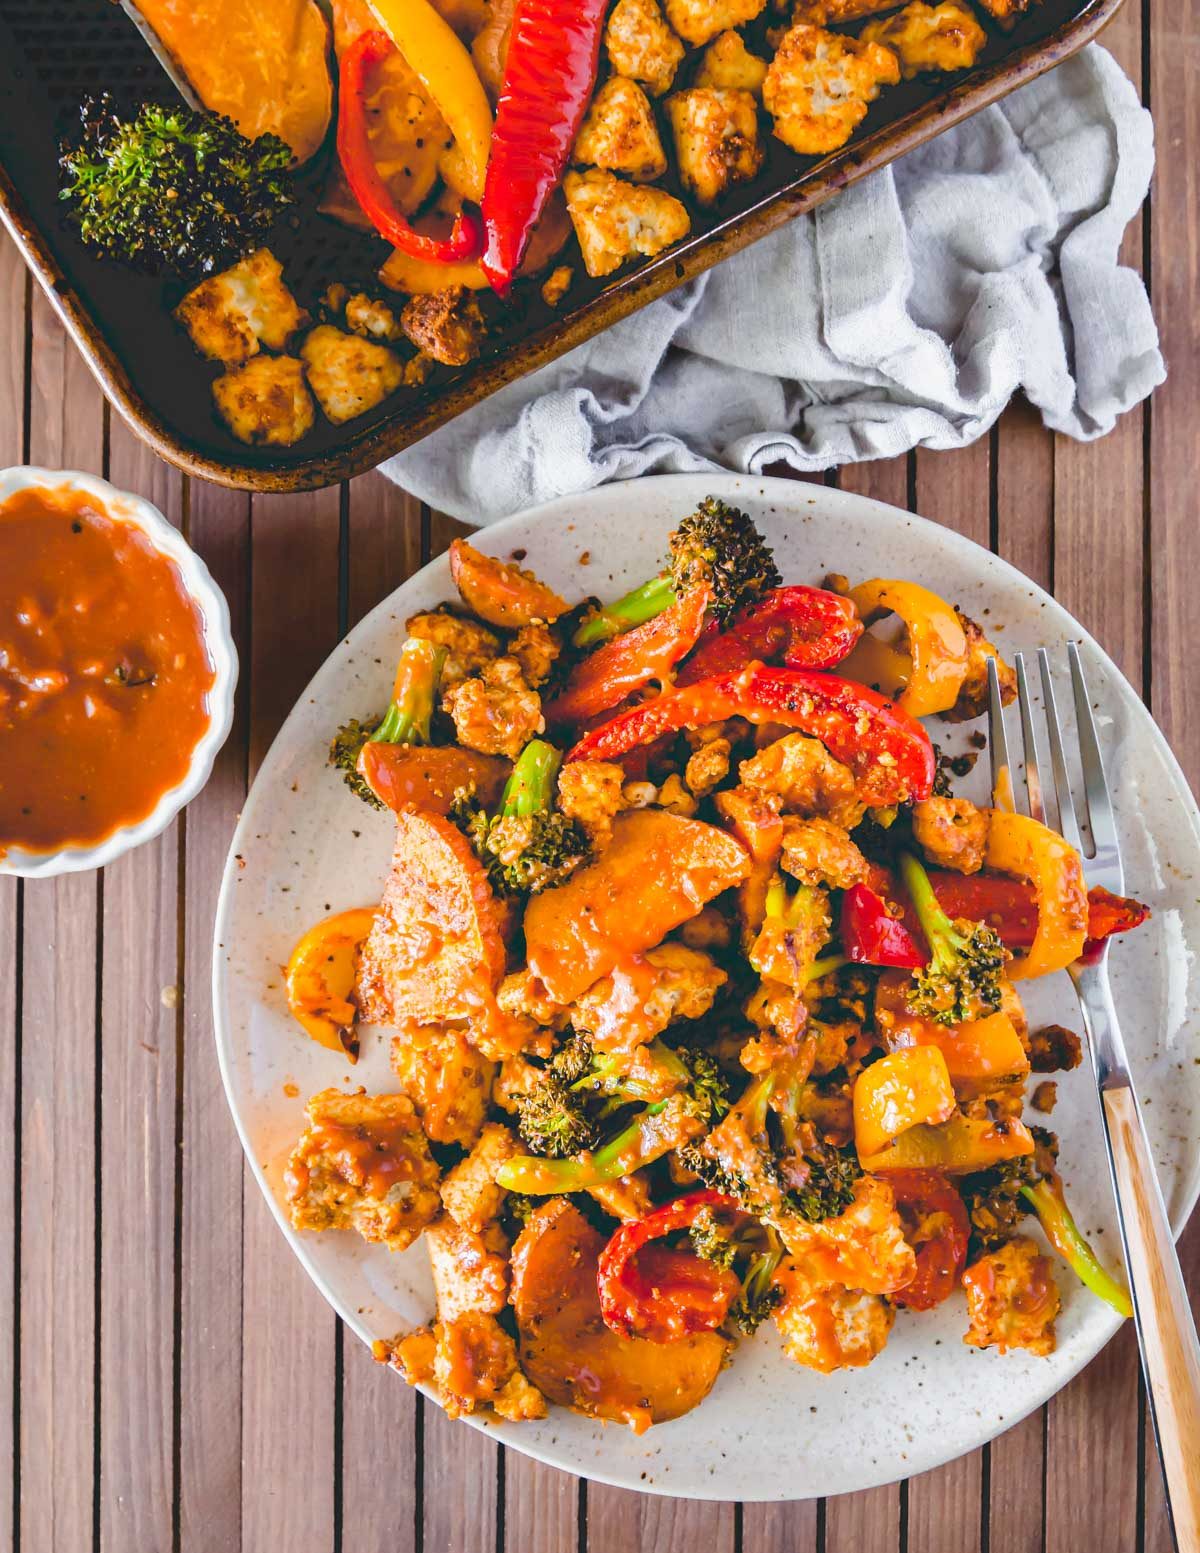 BBQ tofu, broccoli, peppers and sweet potatoes made on a baking sheet in the oven.